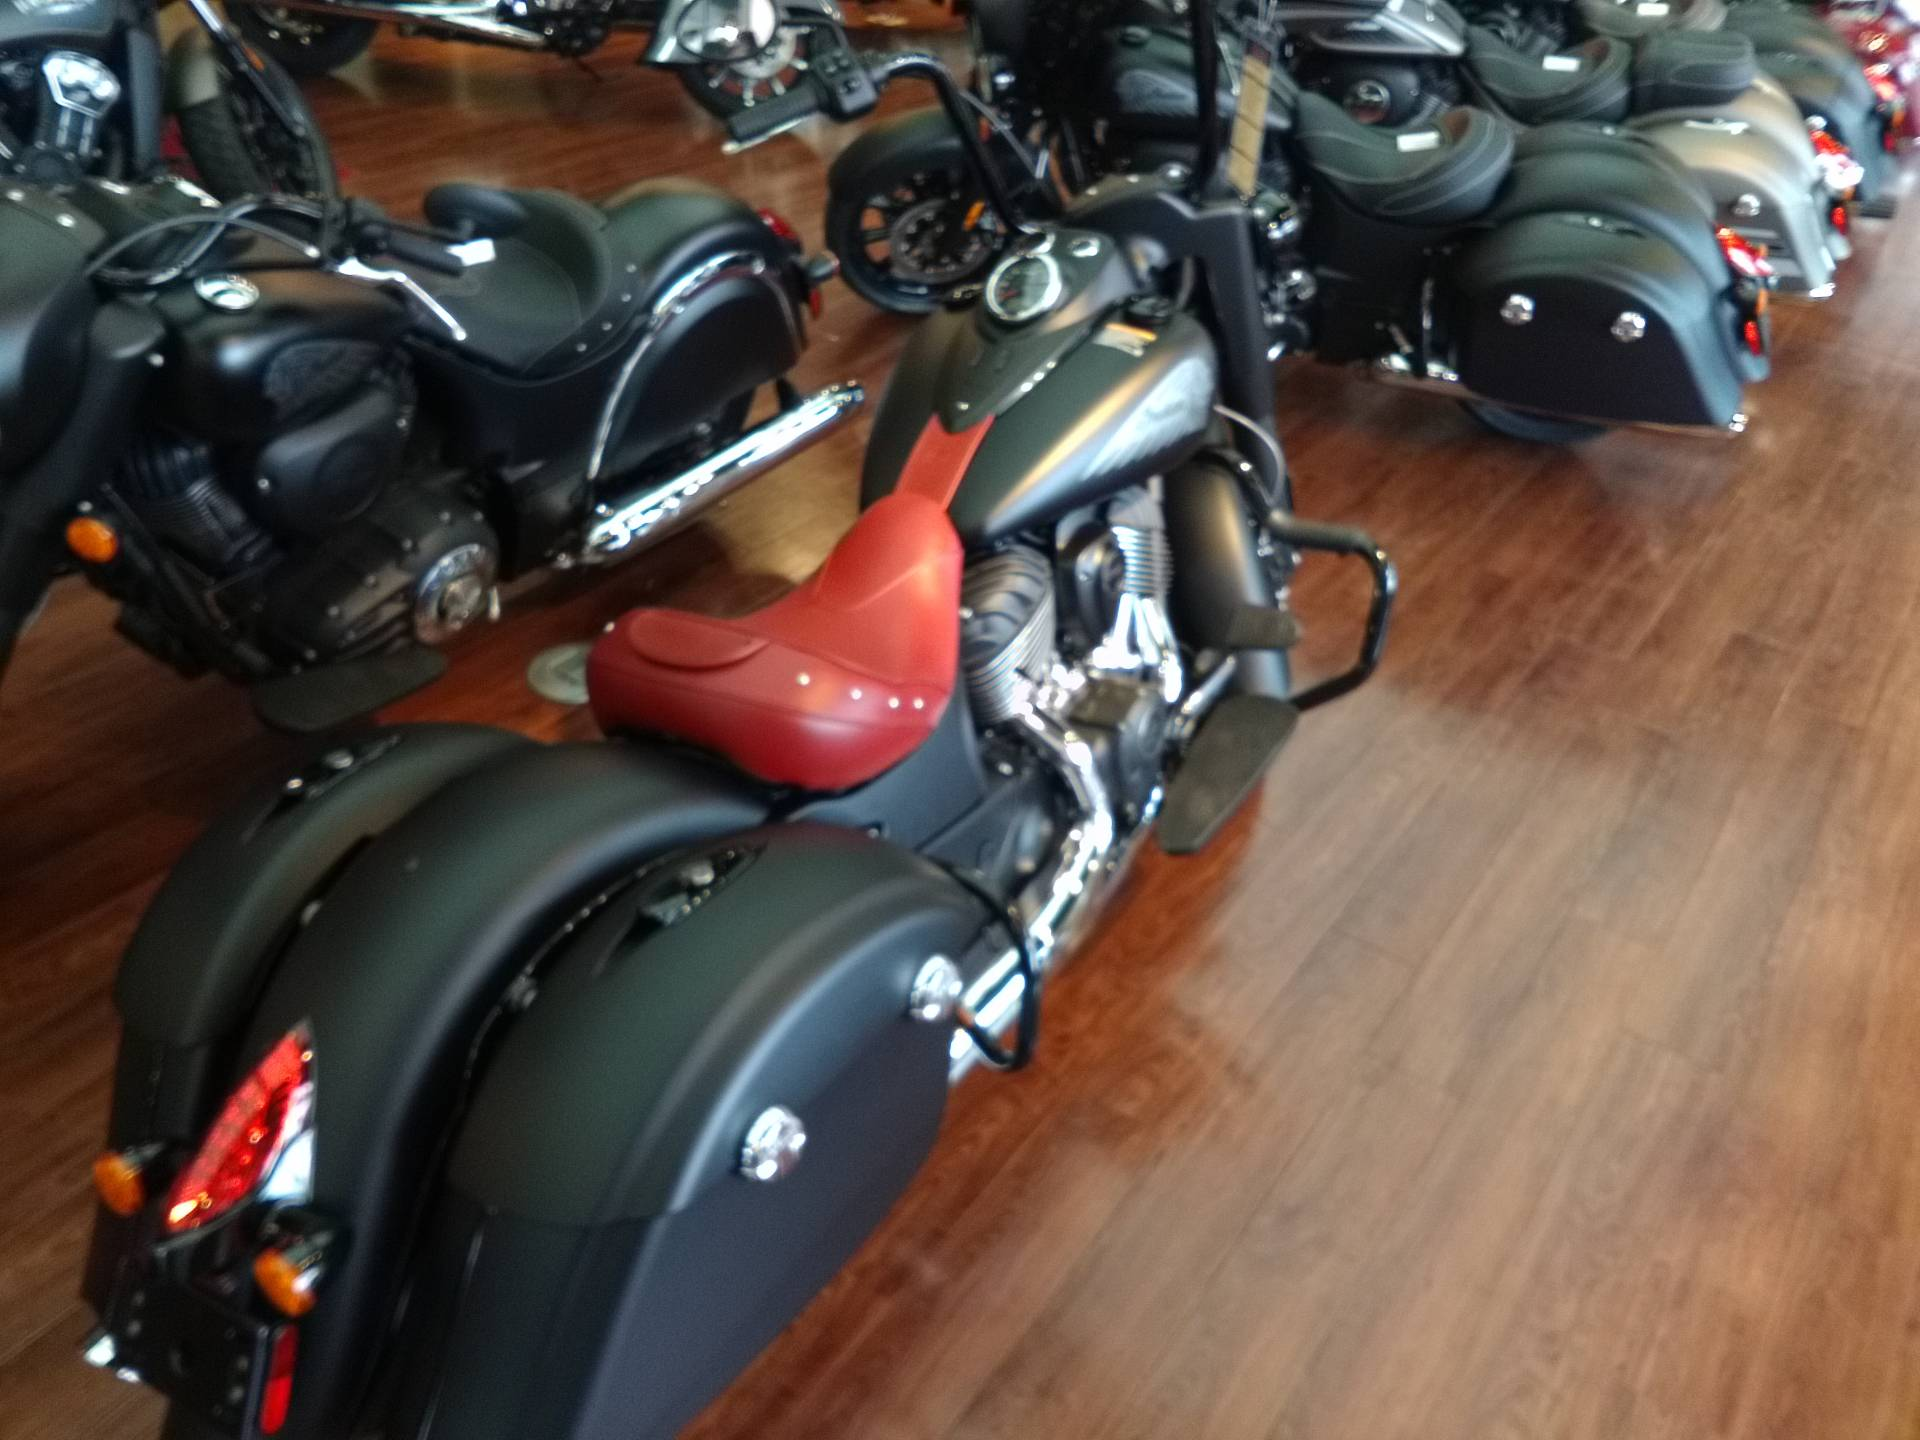 2018 Indian Springfield™ Dark Horse in Newport News, Virginia